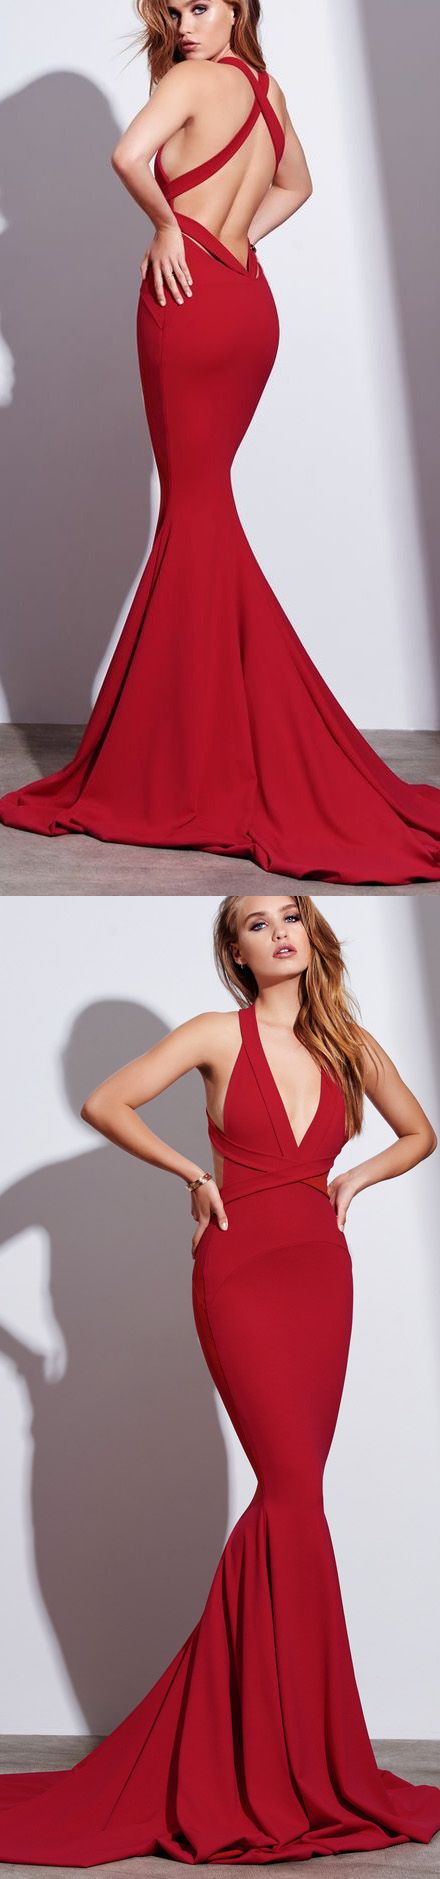 Red Prom Dresses, Long Prom Dresses, Long Red Prom Dresses, Prom Dresses Long, Prom Dresses Red, Red Long Prom Dresses, Prom dresses Sale, Long Evening Dresses, Long Red dresses, Red Long dresses, Criss-Cross Prom Dresses, Criss Cross Prom Dresses, Sweep Train Evening Dresses, Sleeveless Prom Dresses